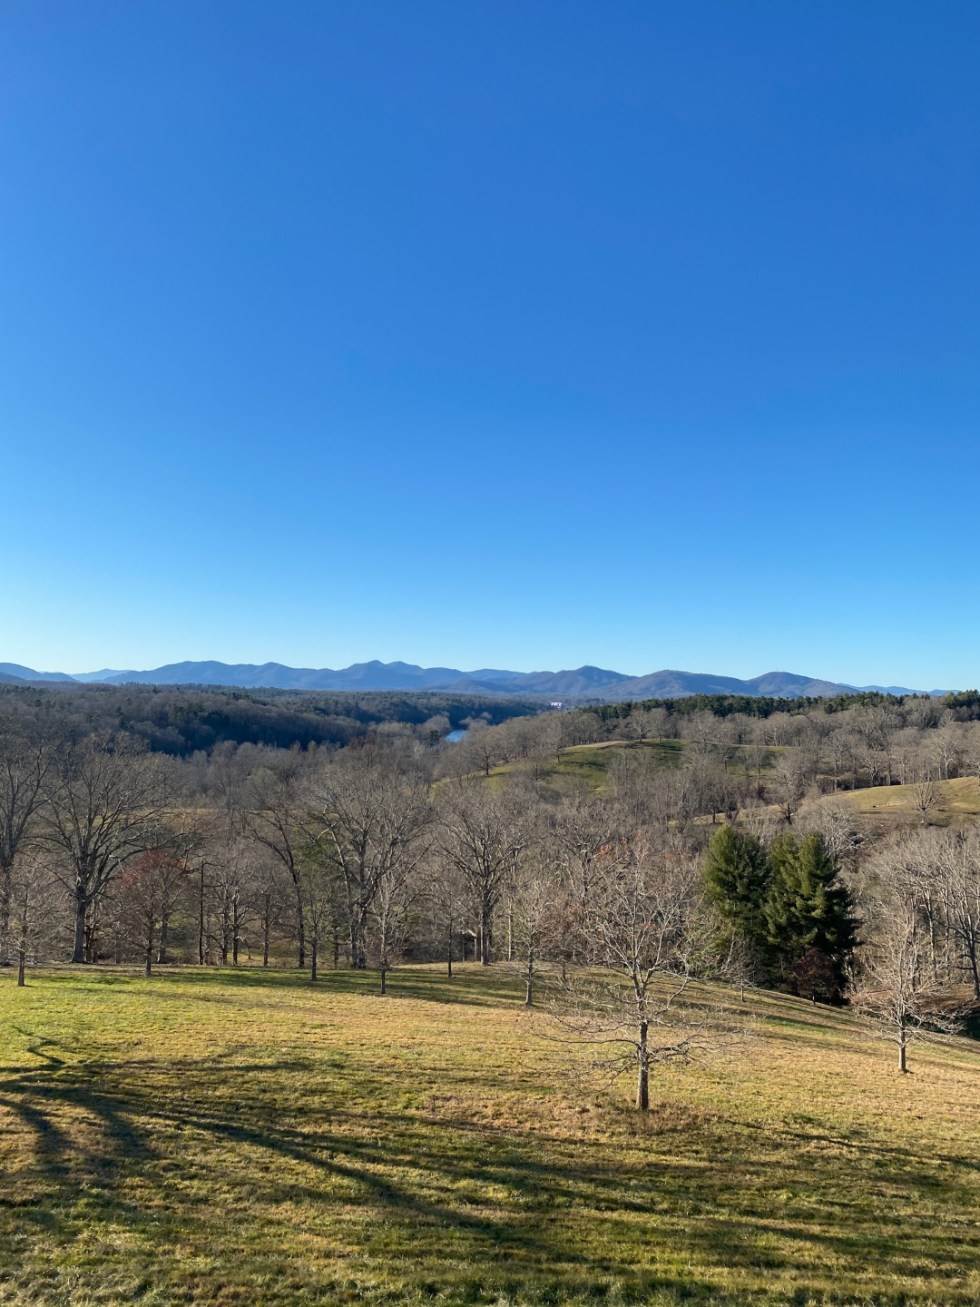 Christmas in Asheville: a Weekend Getaway During the Holidays - I'm Fixin' To - @imfixintoblog |Christmas in Asheville NC by popular NC lifestyle blog, I'm Fixin' To: image of The Winery.